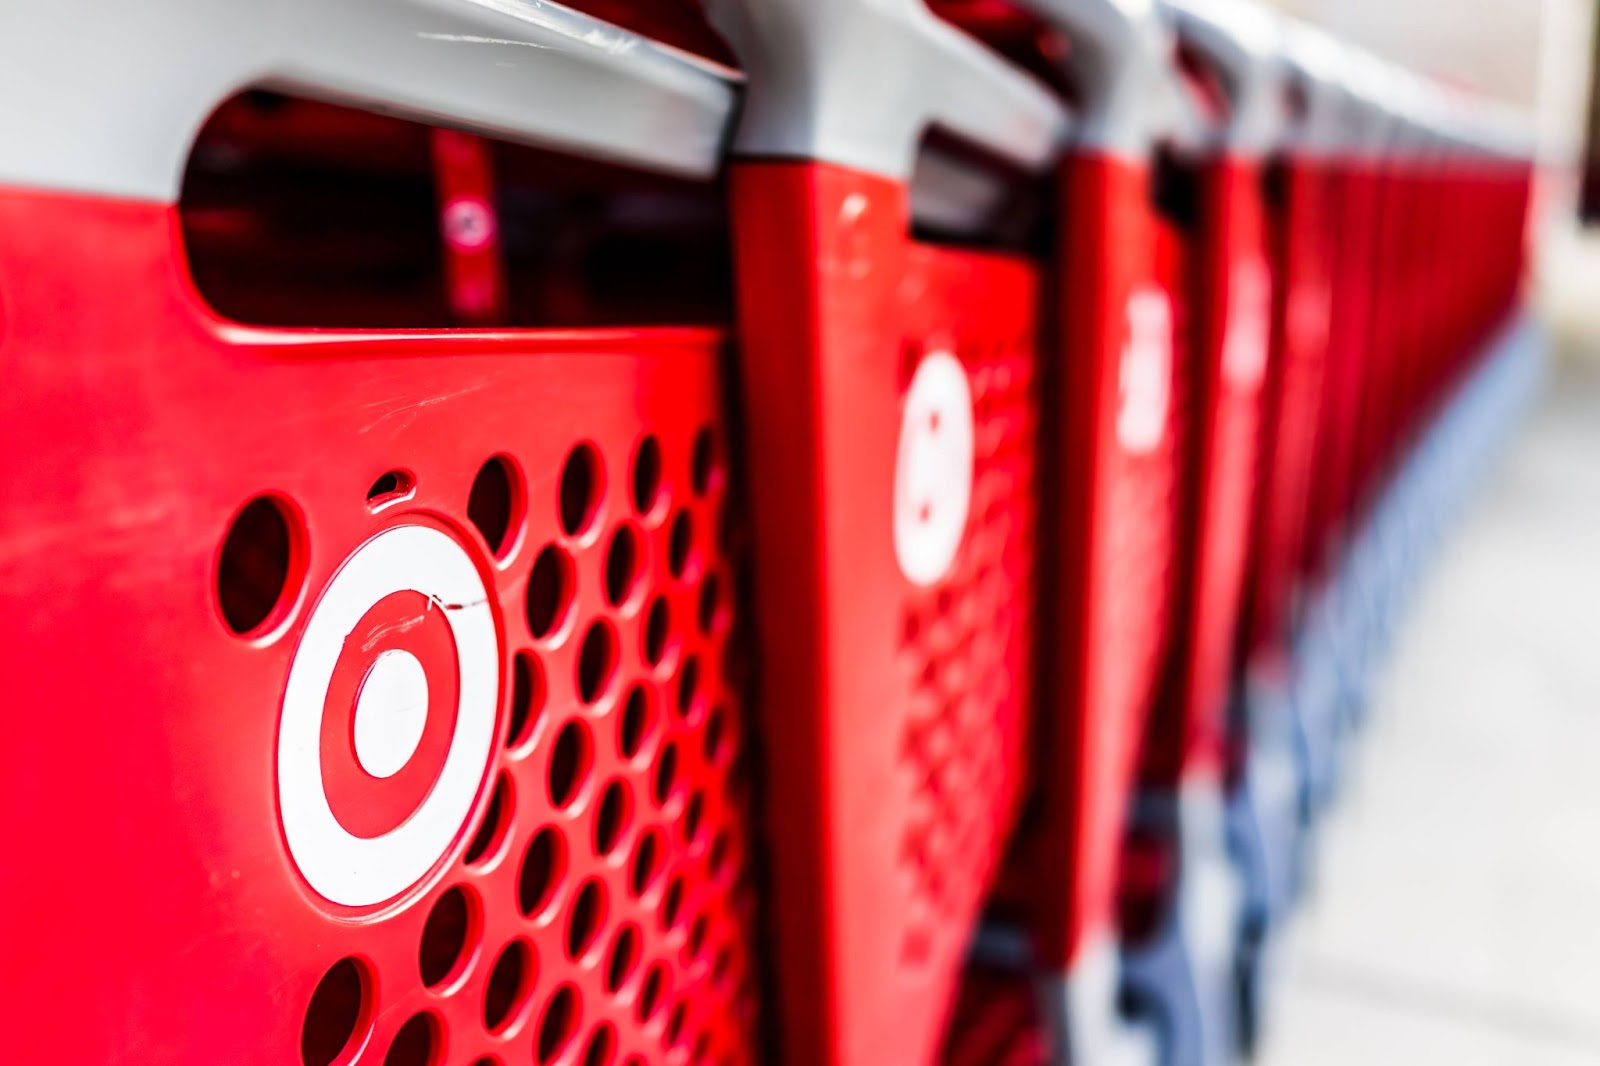 Many target shopping carts in a row